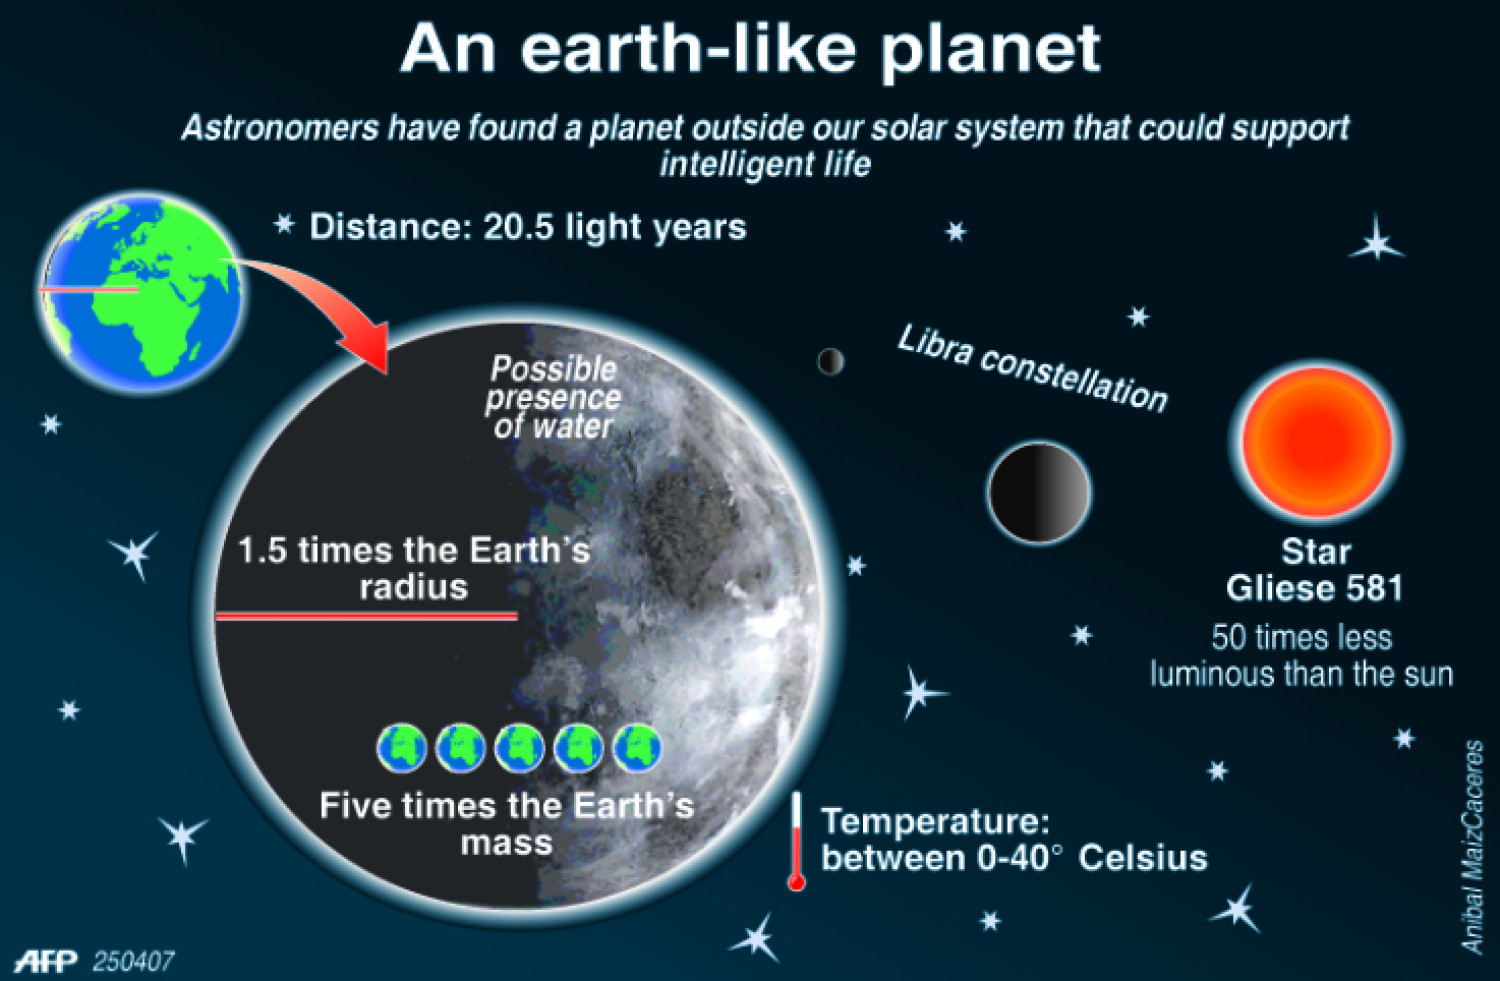 An earth-like planet Infographic